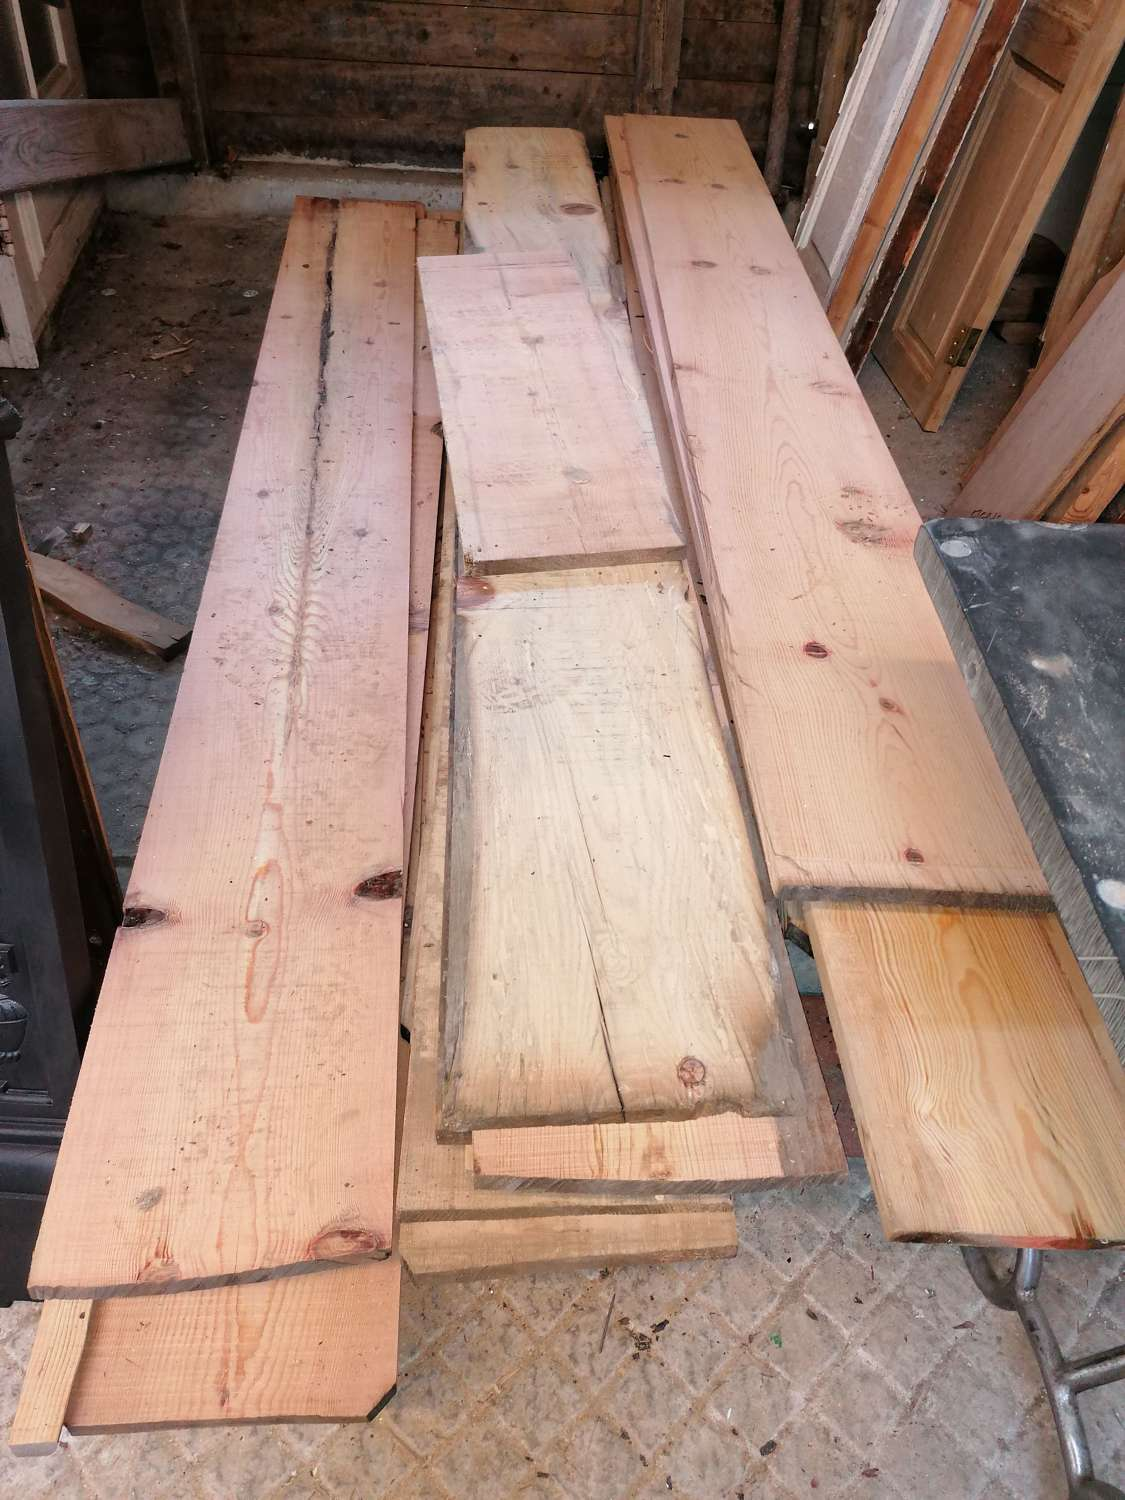 M1431 PINE FLOOR BOARDS CUT FROM BEAMS - VARIOUS WIDTHS AND LENGTHS